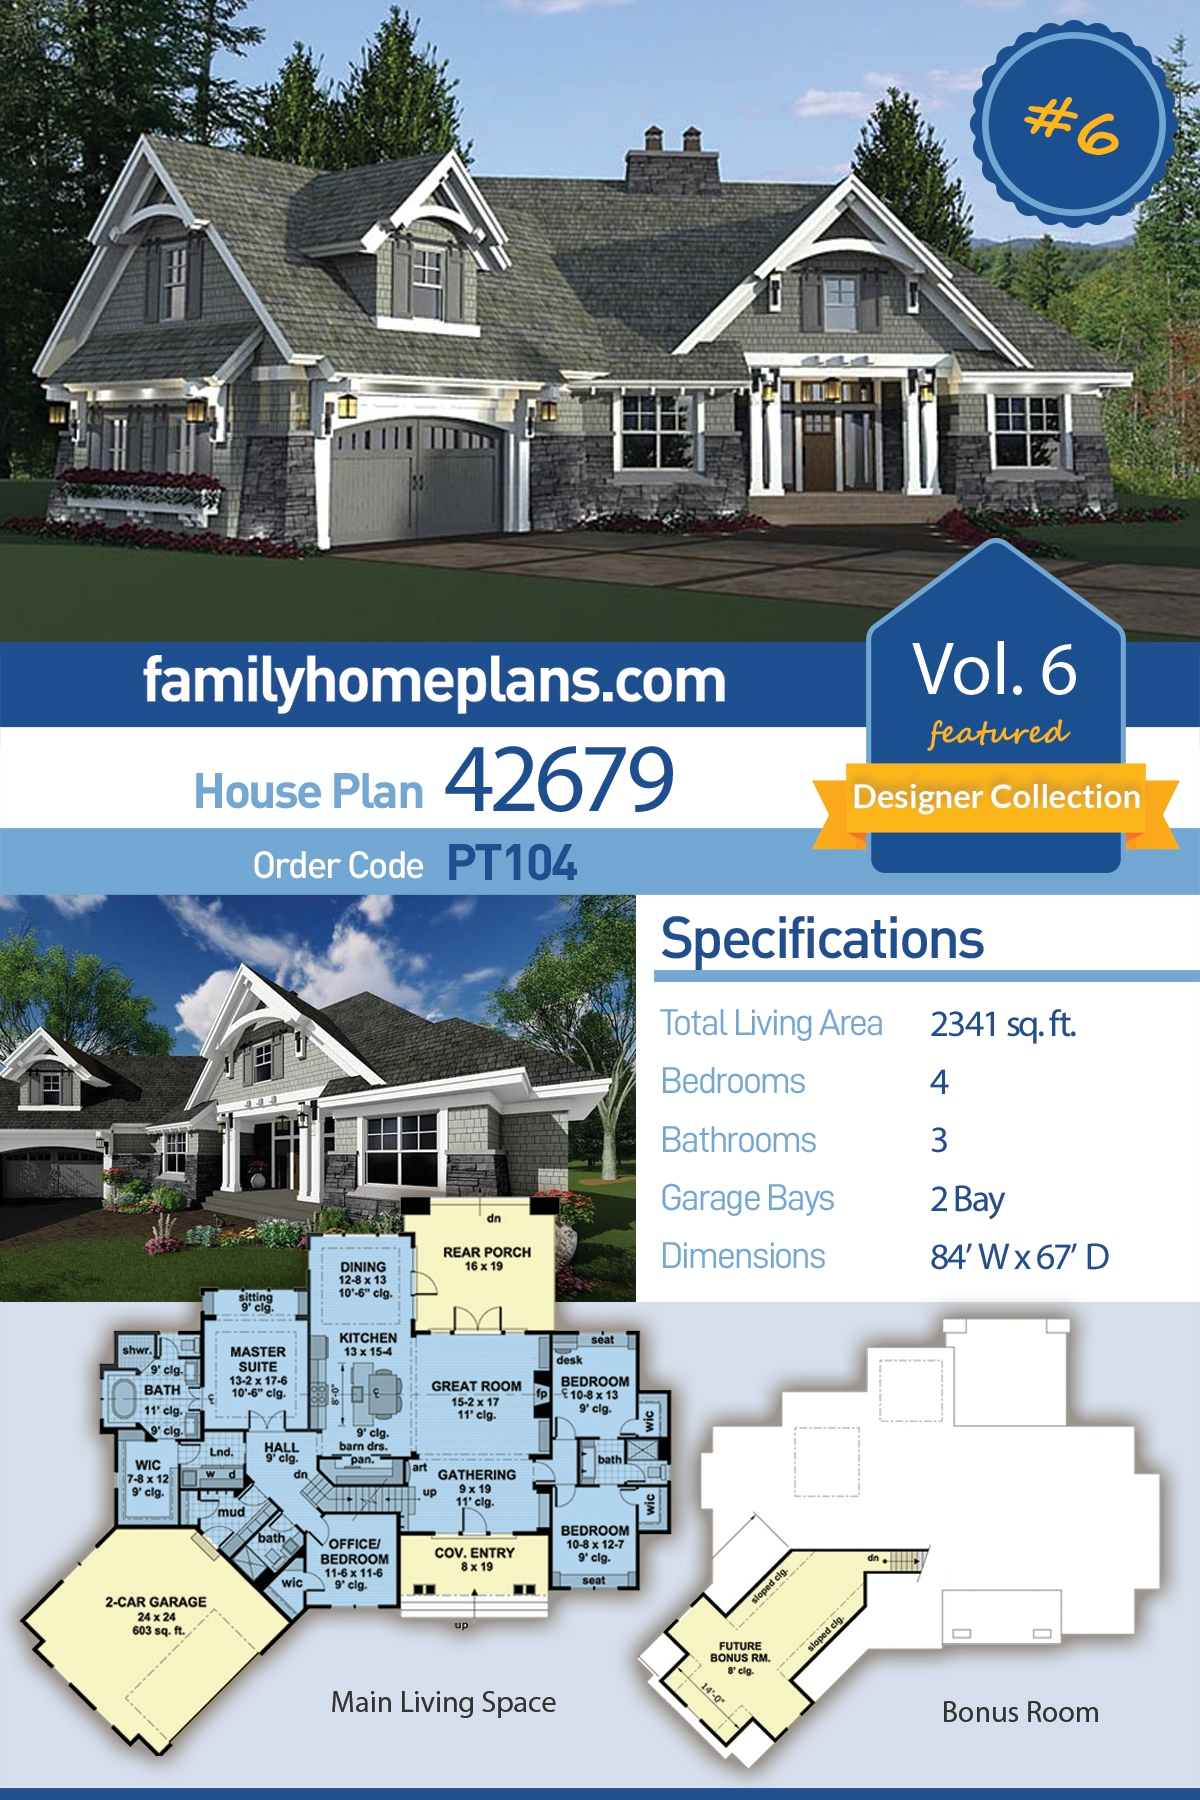 Bungalow, Cottage, Craftsman, French Country, Tudor House Plan 42679 with 4 Beds, 3 Baths, 2 Car Garage